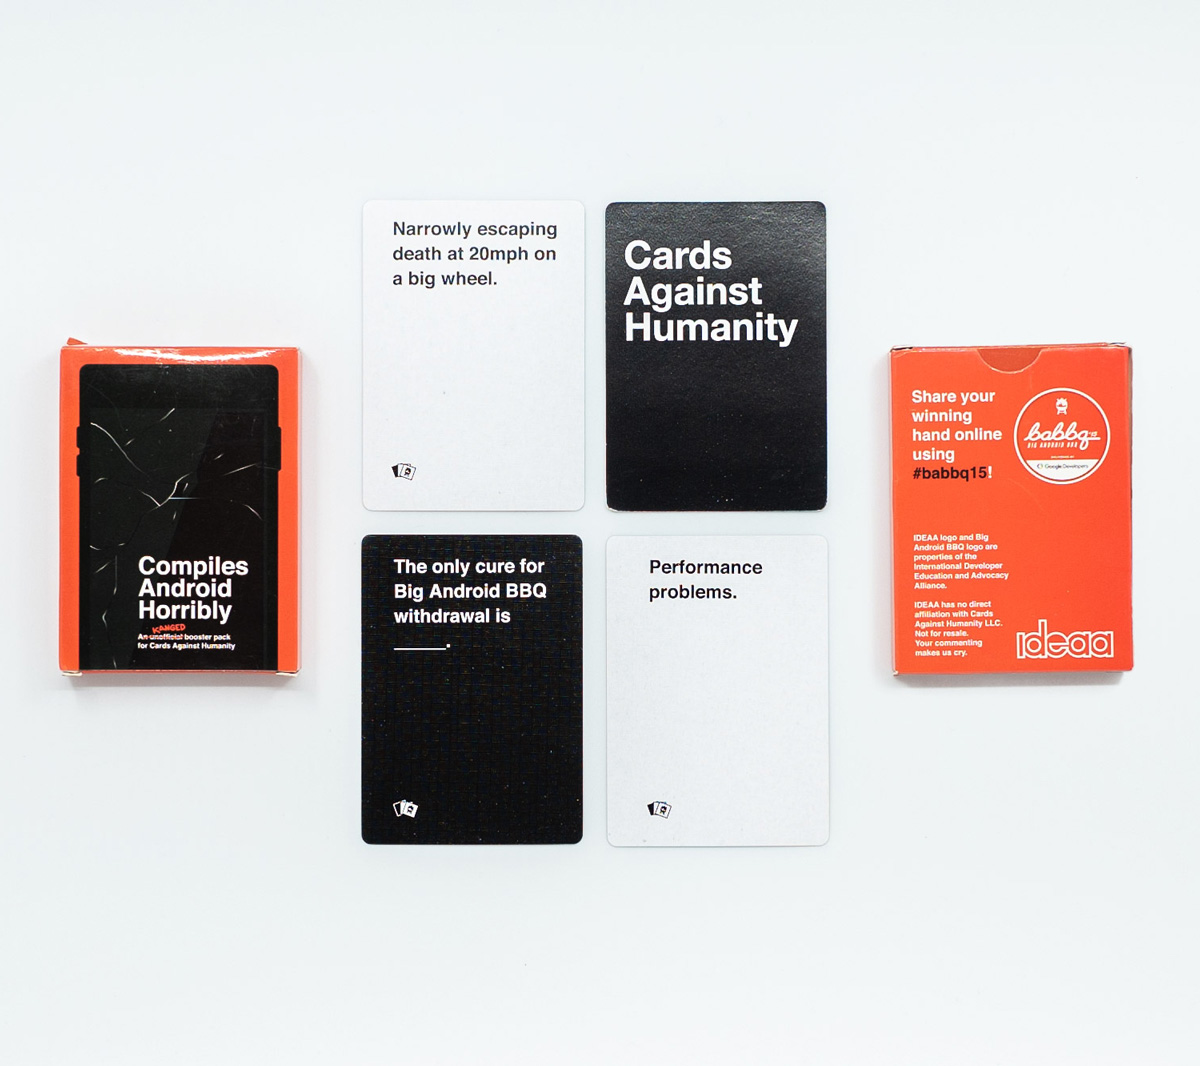 Big Android BBQ-themed booster for Cards Against Humanity